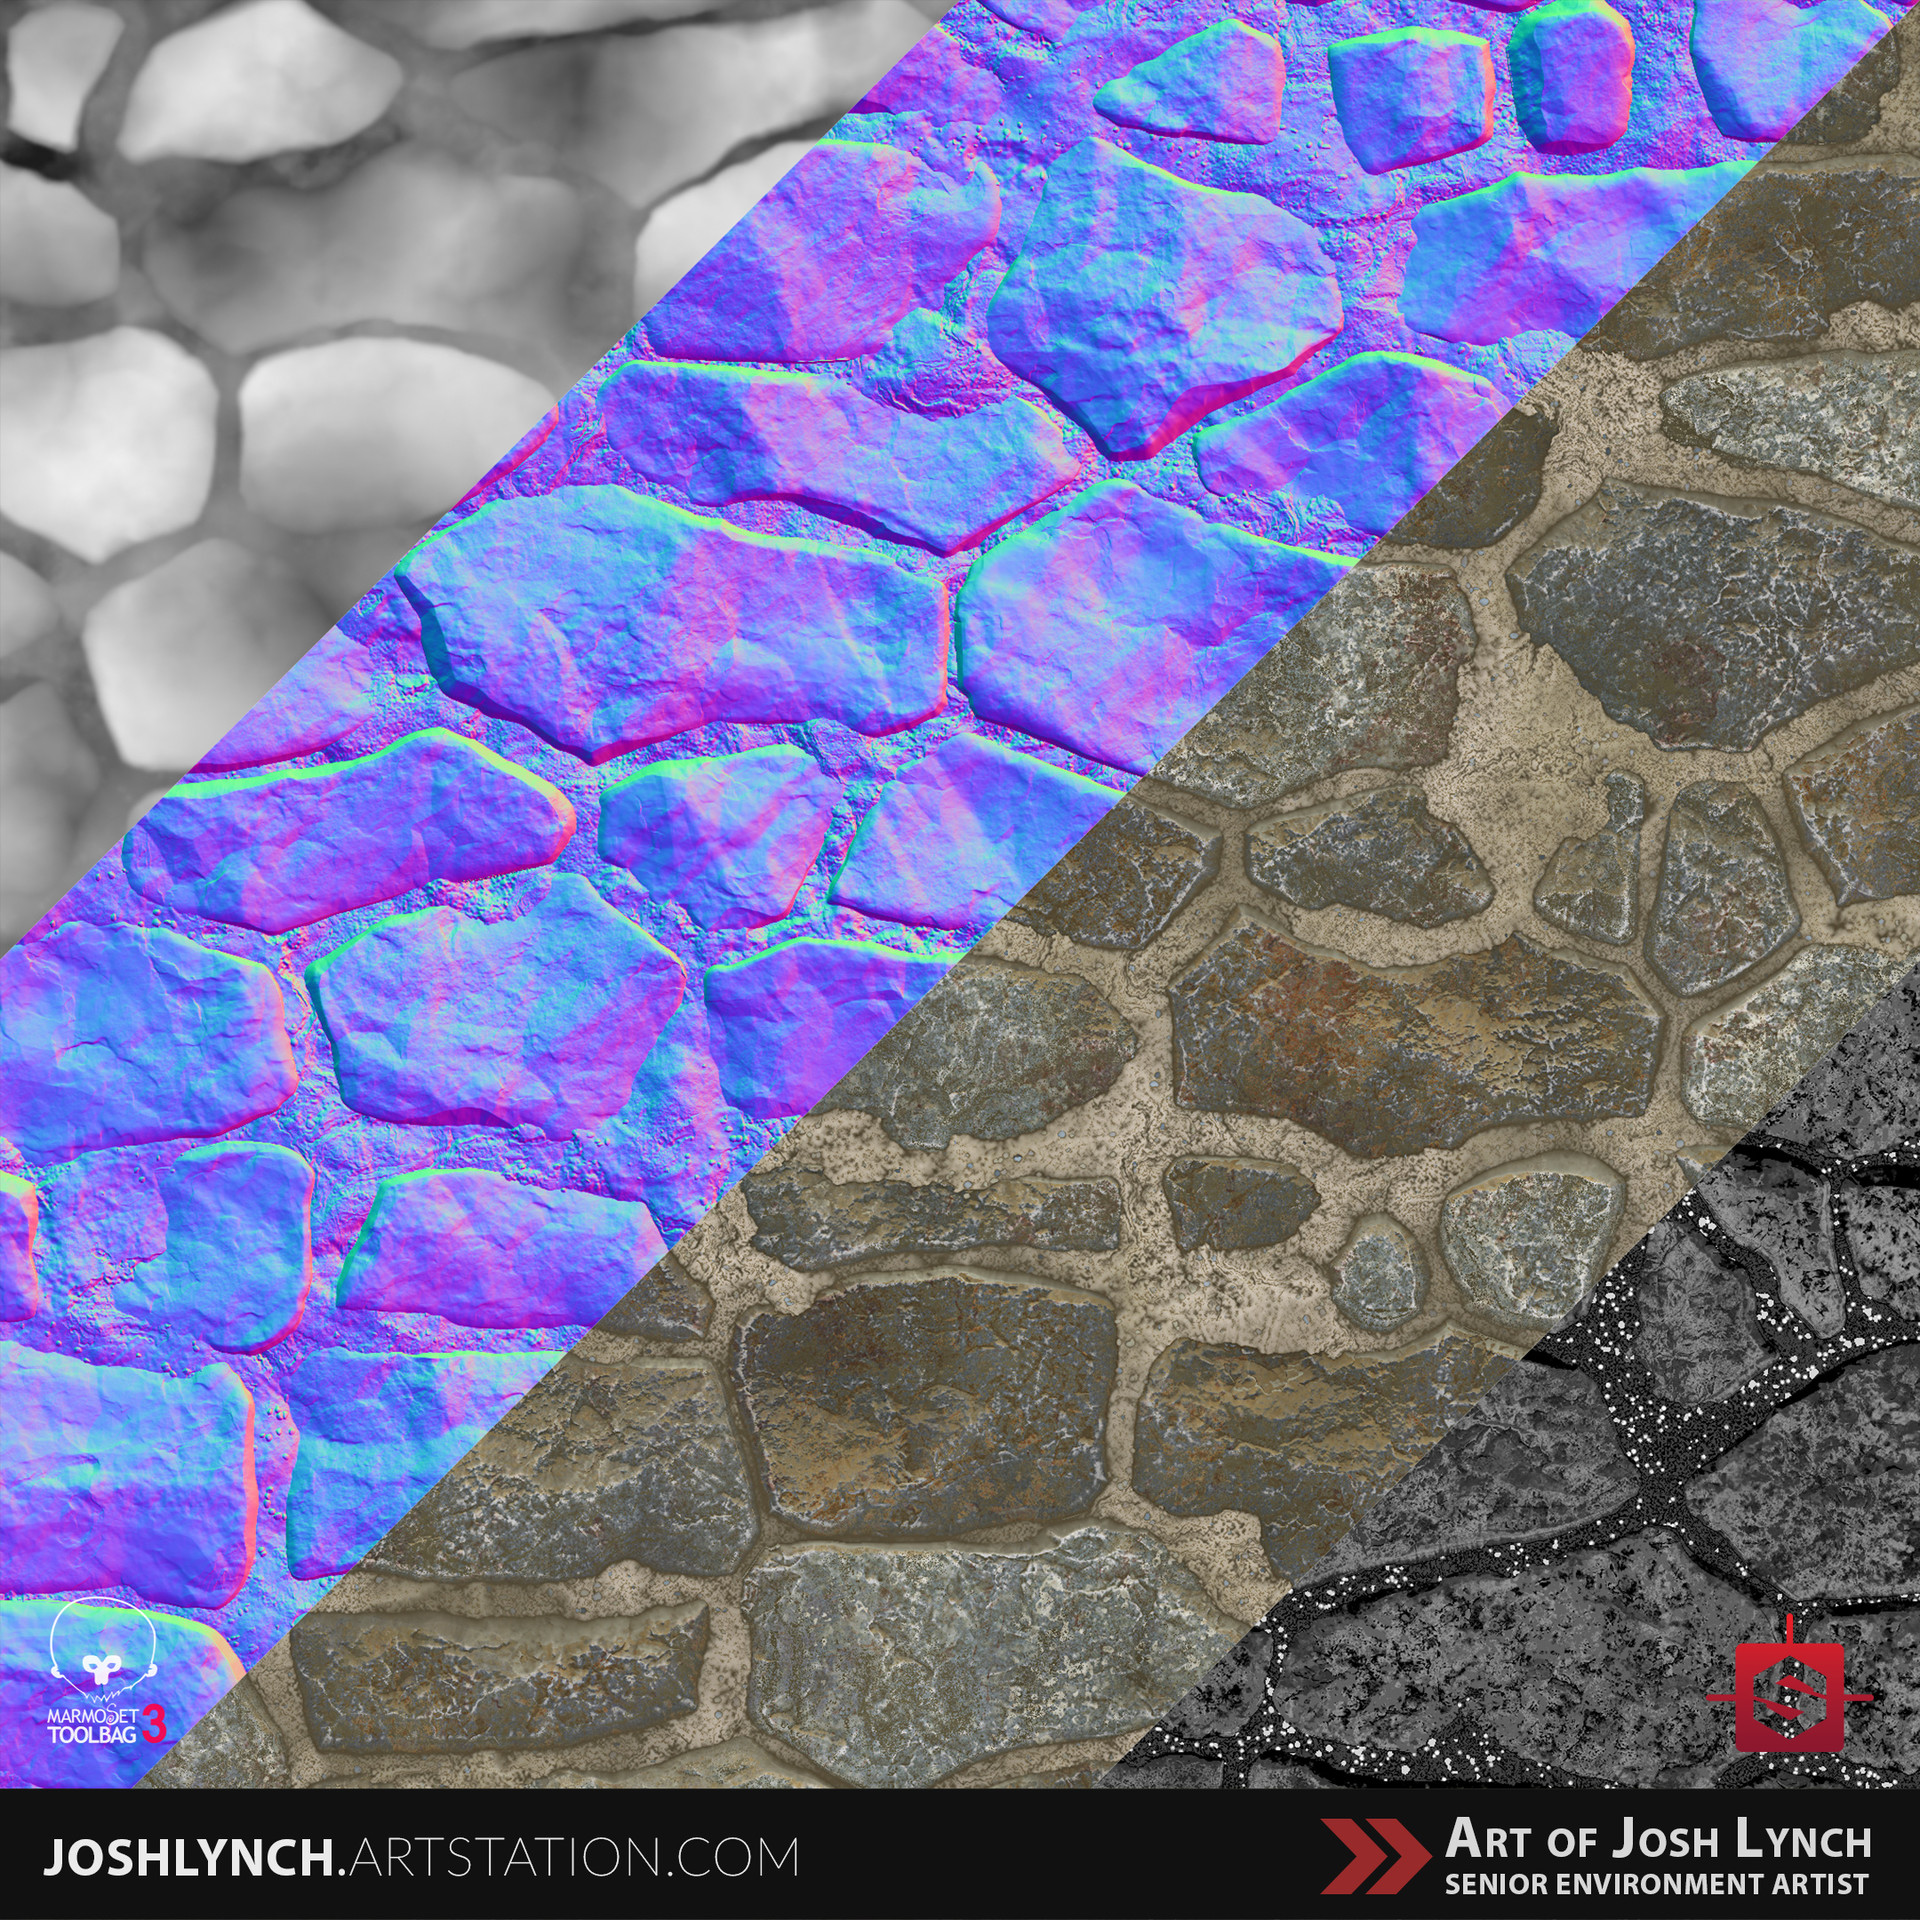 Joshua lynch migs stone wall 04 layout square textures